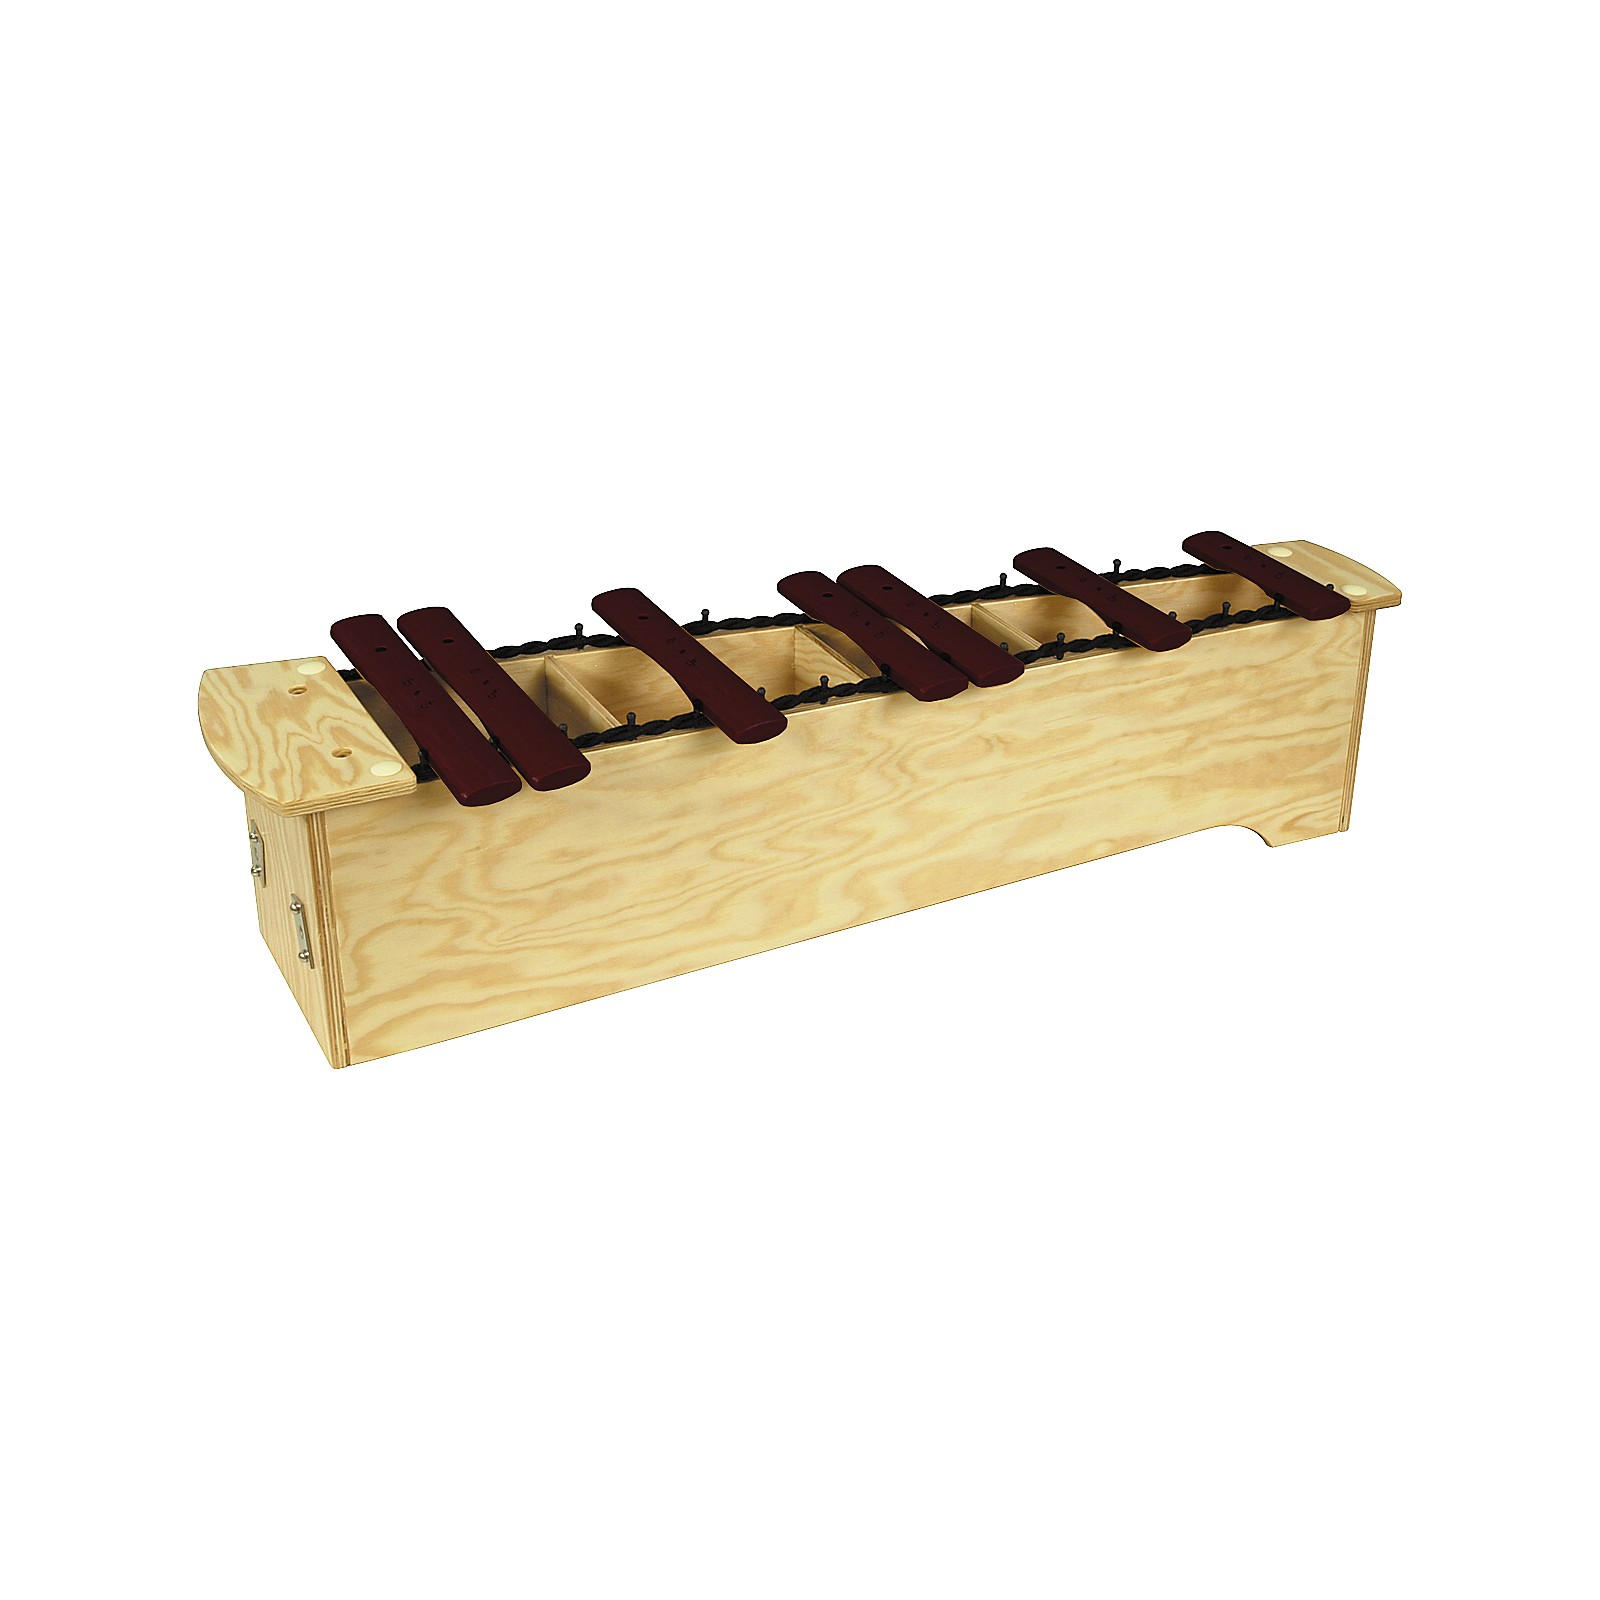 Sonor Orff Rosewood Tenor-Alto Xylophone Chromatic Add-On